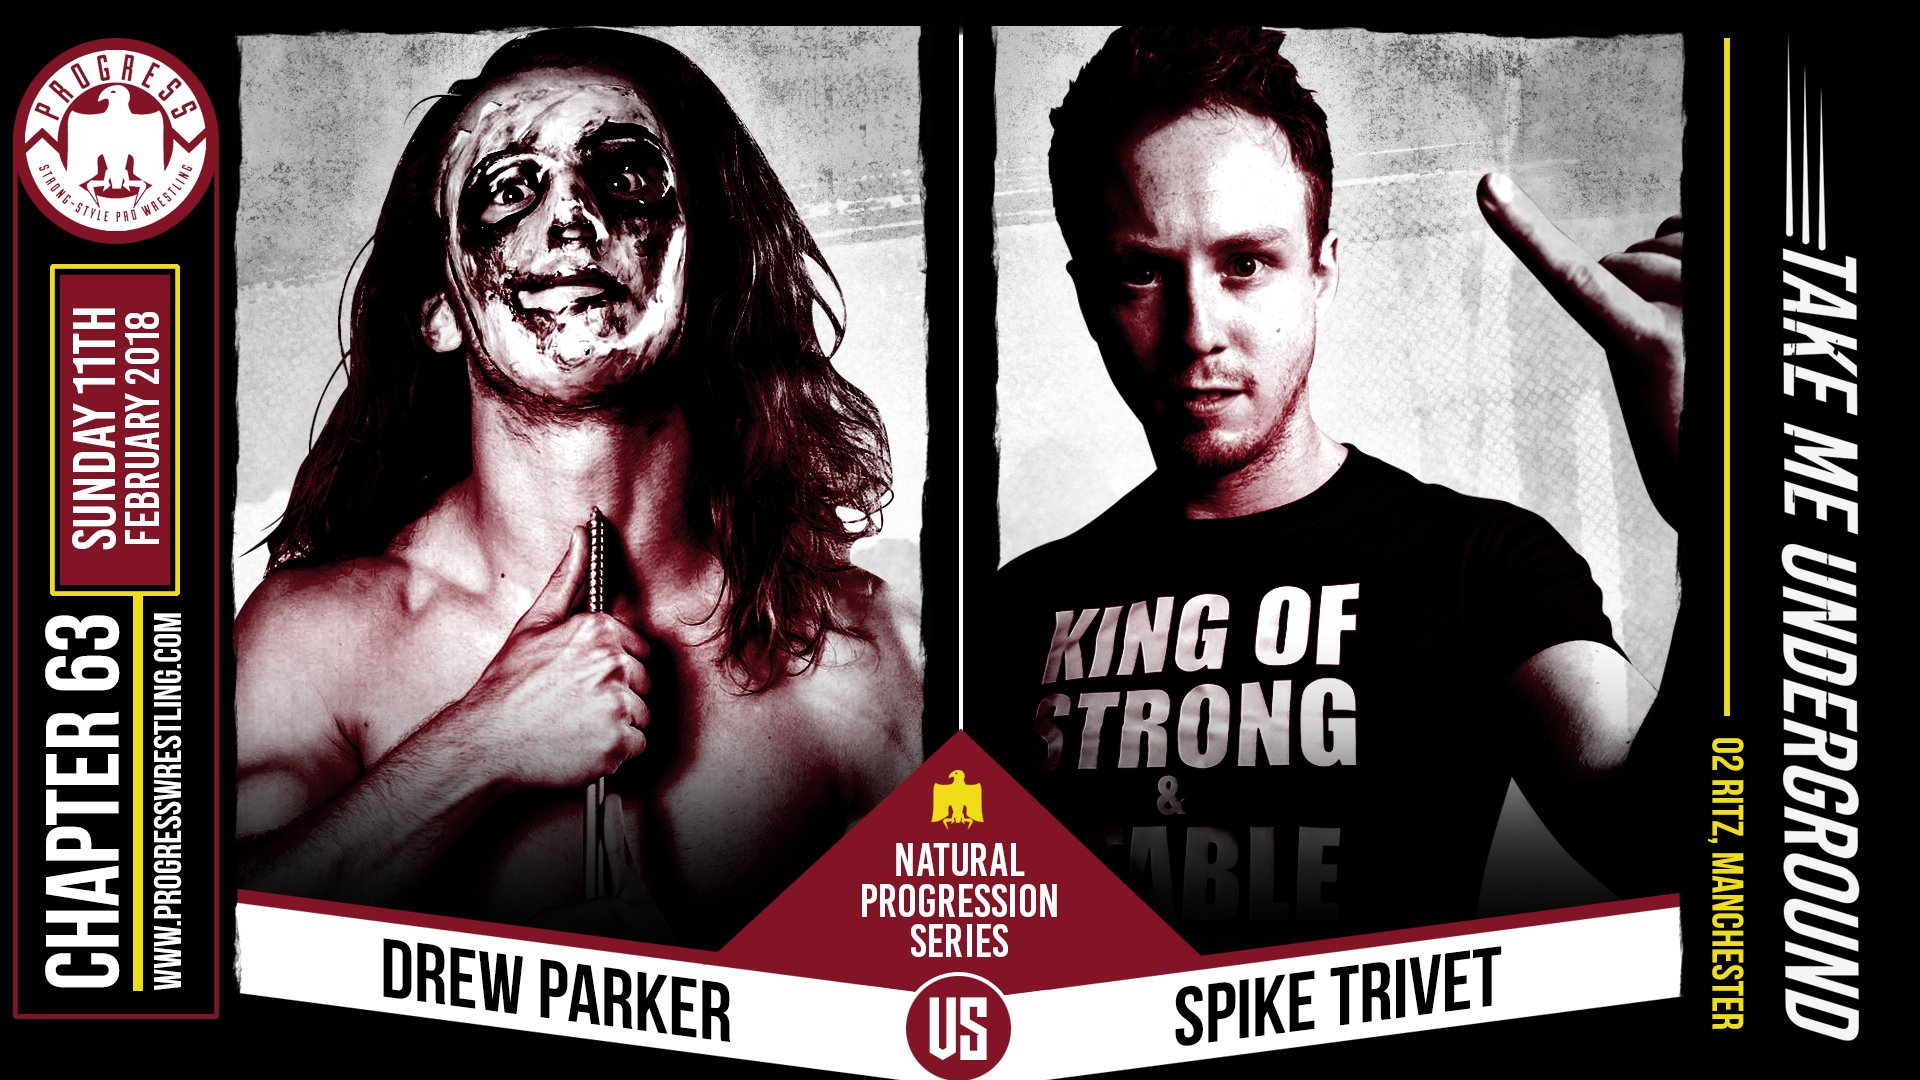 Image result for Progress Wrestling Spike Trivet vs. Drew Parker